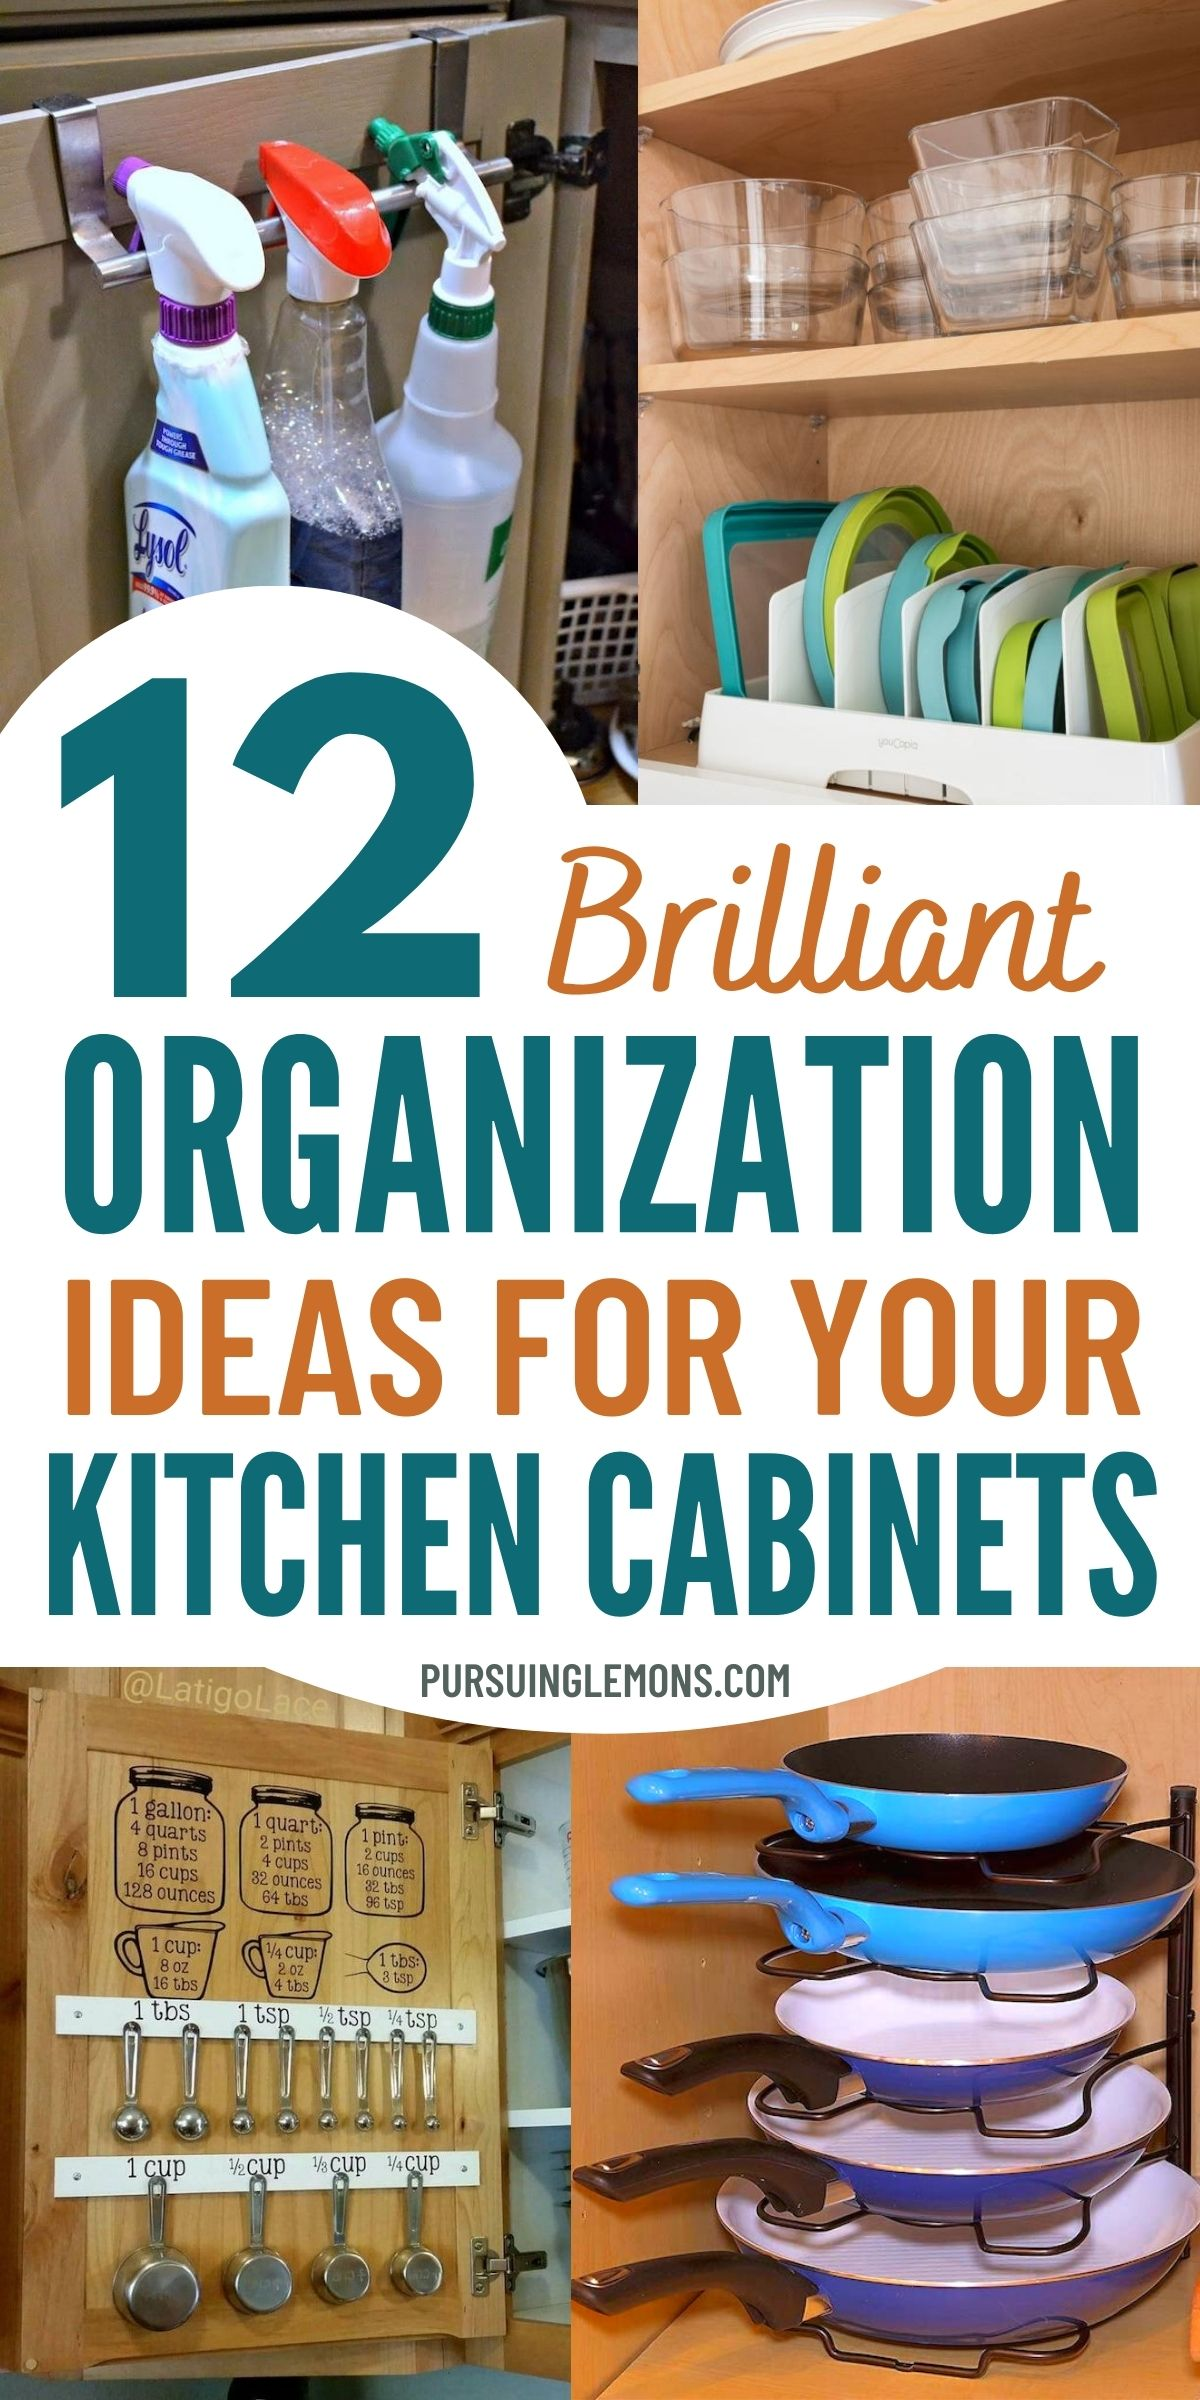 Are you ready to get your kitchen cabinets organized? See all our proven kitchen cabinets organizing tips and ideas now! kitchen organization ideas cabinets | kitchen organizing cabinets | kitchen organization cabinet cupboards | how to organize kitchen cabinets | how to organize kitchen cupboard #organization #organizekitchen